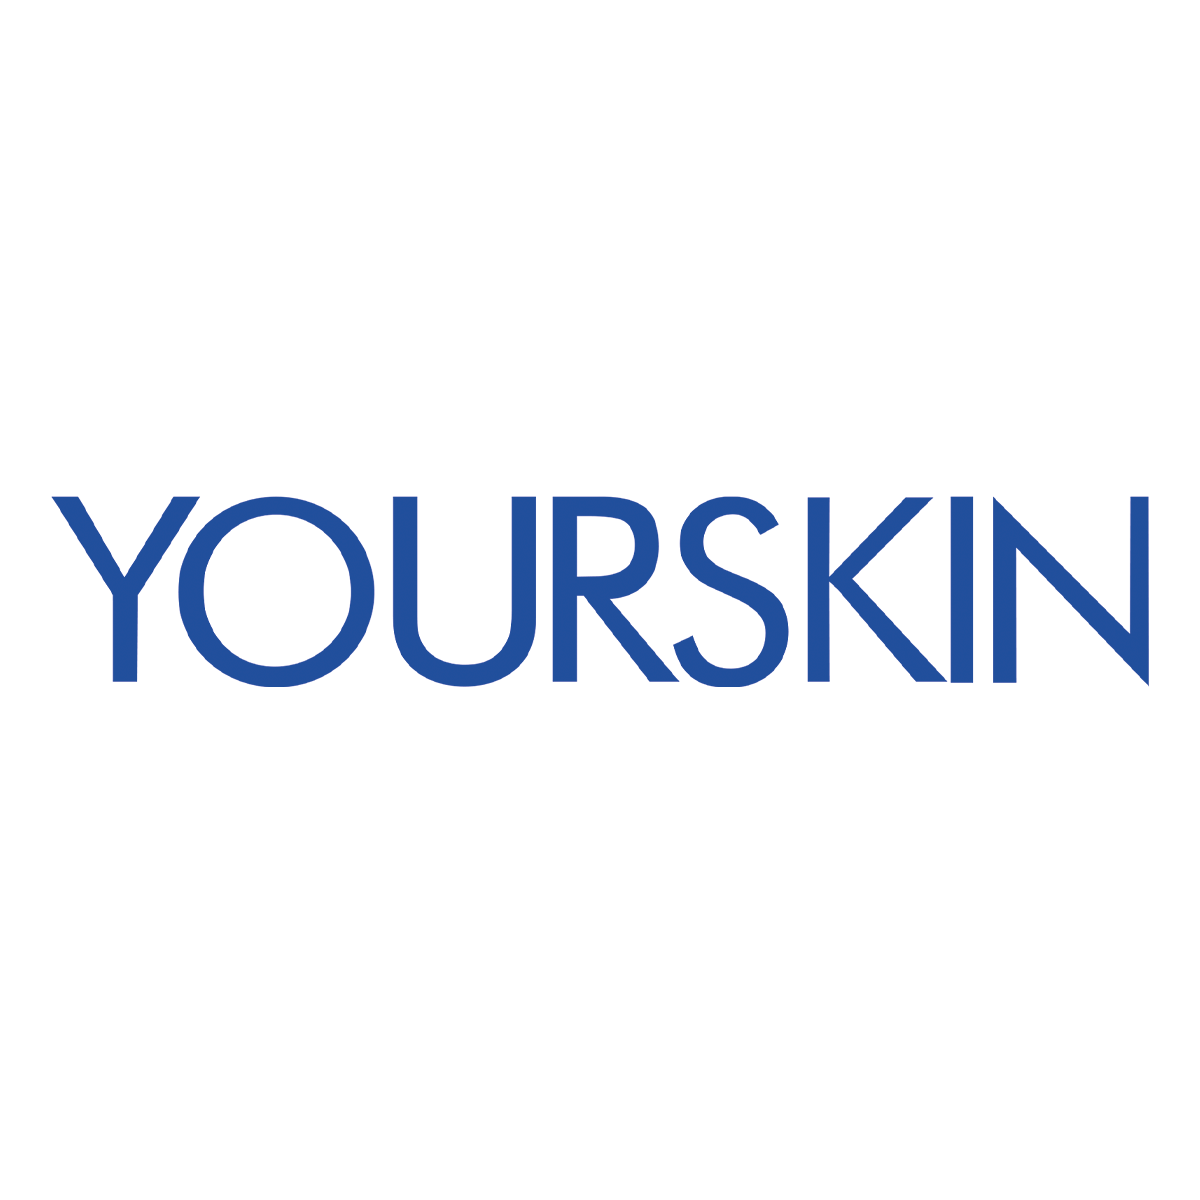 Eucerin UreaRepair Plus Lotion 10% Urea - 250 ml